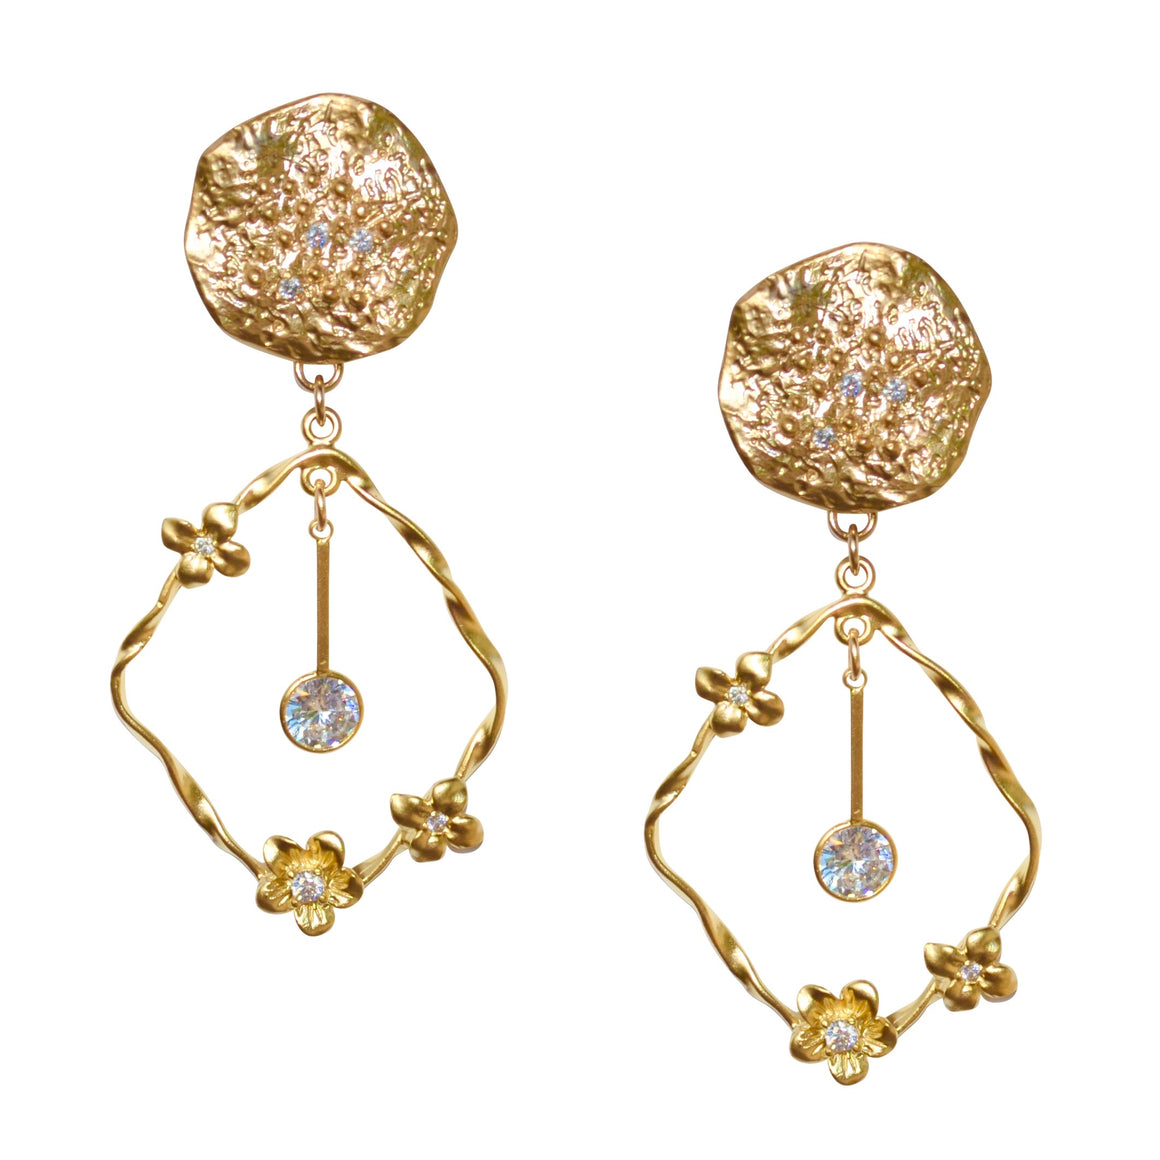 CHARLOTTE TEXTURED OVAL FLOWER EARRING